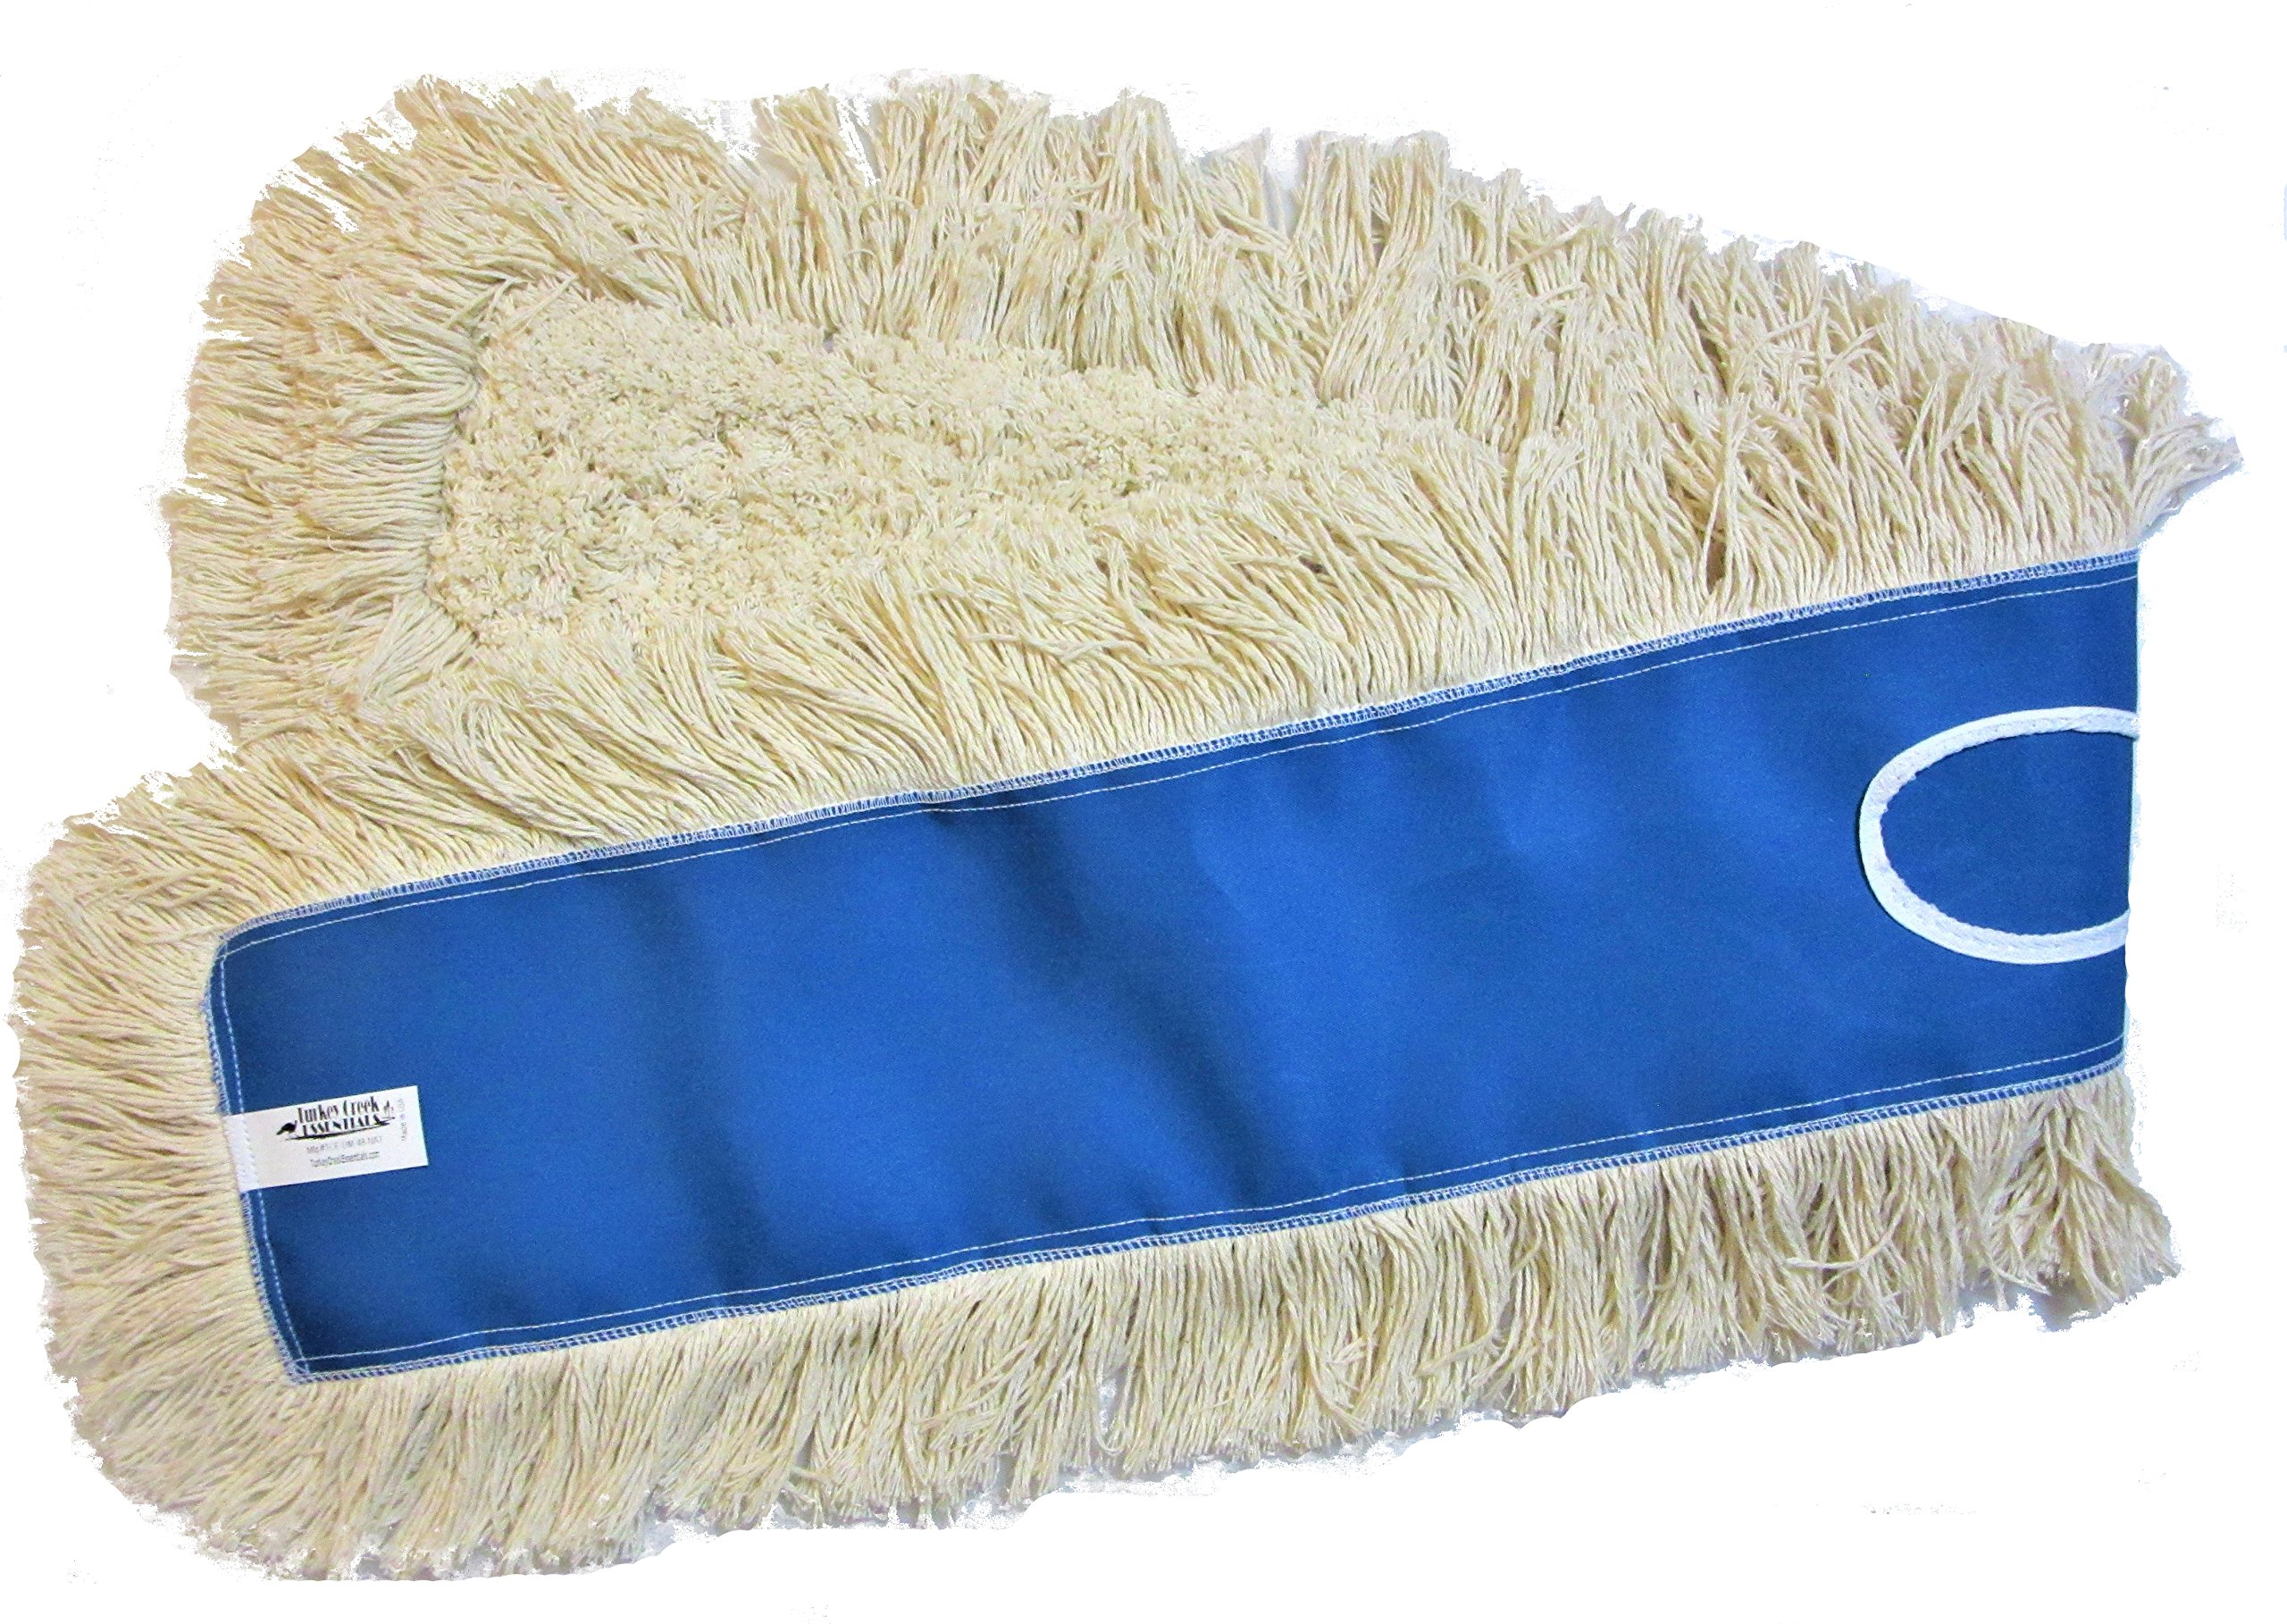 48'' Industrial Strength Washable Cotton Dust Mop Refill Thick Tufted Replacement Head for Home & Commercial Use for 48 inch Frame Cleans Hardwood Laminate Concrete or Other Floor Systems